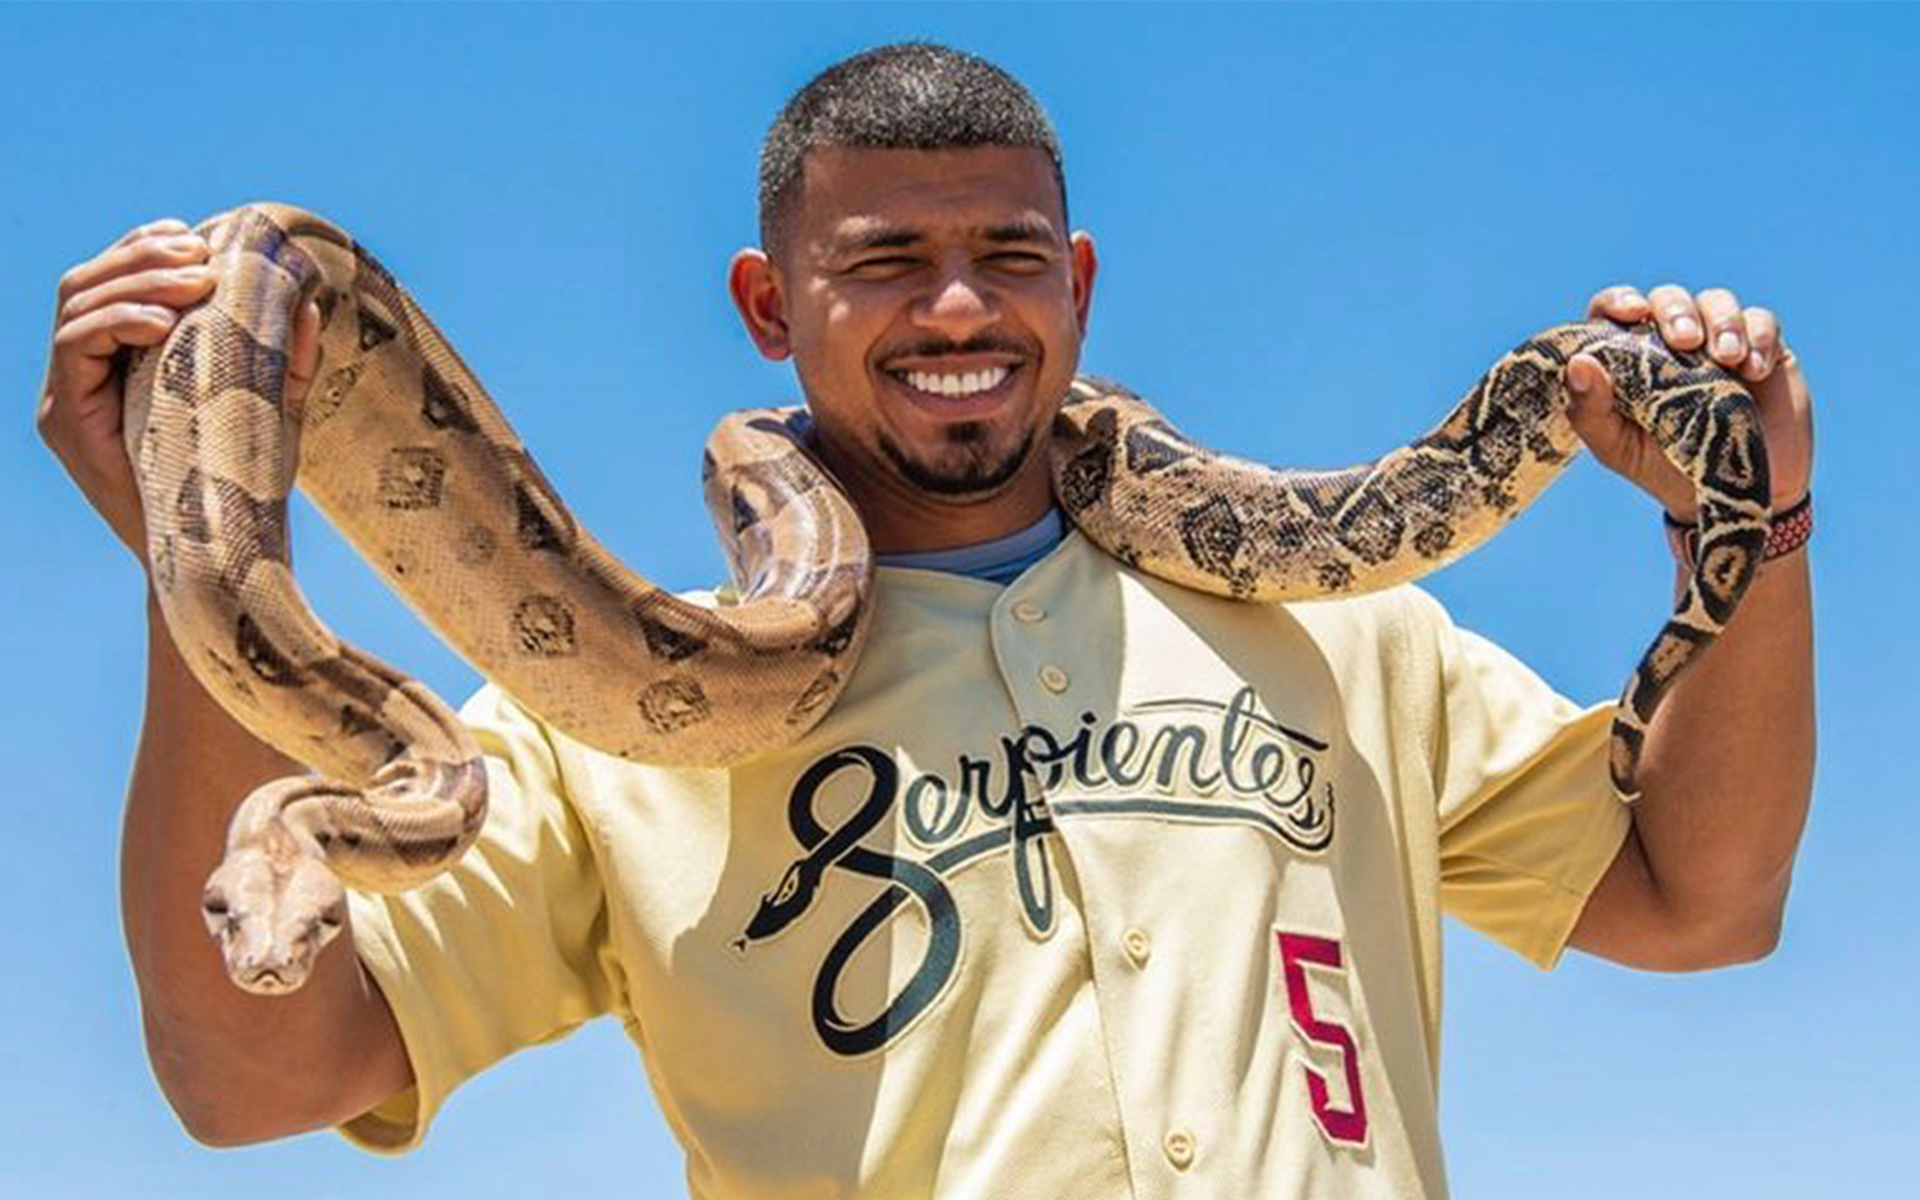 """The Arizona Diamondbacks are the next big league club to unveil their new Nike MLB City connect uniform, becoming the fifth of seven teams so far to do so in the inaugural campaign of Nike's new uniform program. The jersey is gold and reads 'Serpientes"""" across the front, which is the Spanish translation of Snakes to pay tribute to the Hispanic Culture that is prominent in Arizona. On the right sleeve is the Arizona state flag and on the left is their """"A"""" logo to highlight the Sonoran Desert's sand. Lastly, the patch on the bottom front of the jersey is a """"V"""" iocktag, which is a nod to Phoenix's moniker, the Valley of the Sun. The new caps will also carry the same color scheme as the jersey. The Diamondbacks will debut the uniforms June 18 against the Los Angeles Dodgers and they plan on wearing them six more times this season. Arizona Diamondbacks Pro David Peralta, who is Venezuelan, was very thrilled with the announcement stating """"I was really excited about that because we are involving the Spanish community in a special way. Arizona has a really big Hispanic community, for me to be part of that, I am really proud and excited about it"""". D-Backs President and CEO Derrick Hall worked with Nike and their players all last season to survey their thoughts and opinions on the new jerseys. The Serpientes jersey will replace their alternate """"Los D-Backs"""" jersey and be a part of the regular jersey rotation next season depending on if the fans like it. Hall stated """"If there's strong support and enthusiasm from the fans or players, we will encourage our guys to rotate them in more"""". The team has not been afraid of being the first on trying new jersey designs out. Back in 2016 season, the team unveiled a complete redesign featuring a polarizing gradient snake skin pattern on their jerseys and pants, which to say the least didn't do so well. The next MLB teams to debut their 2021 city connect jerseys will be the San Francisco Giants in July and the Dodgers in August. So far, th"""